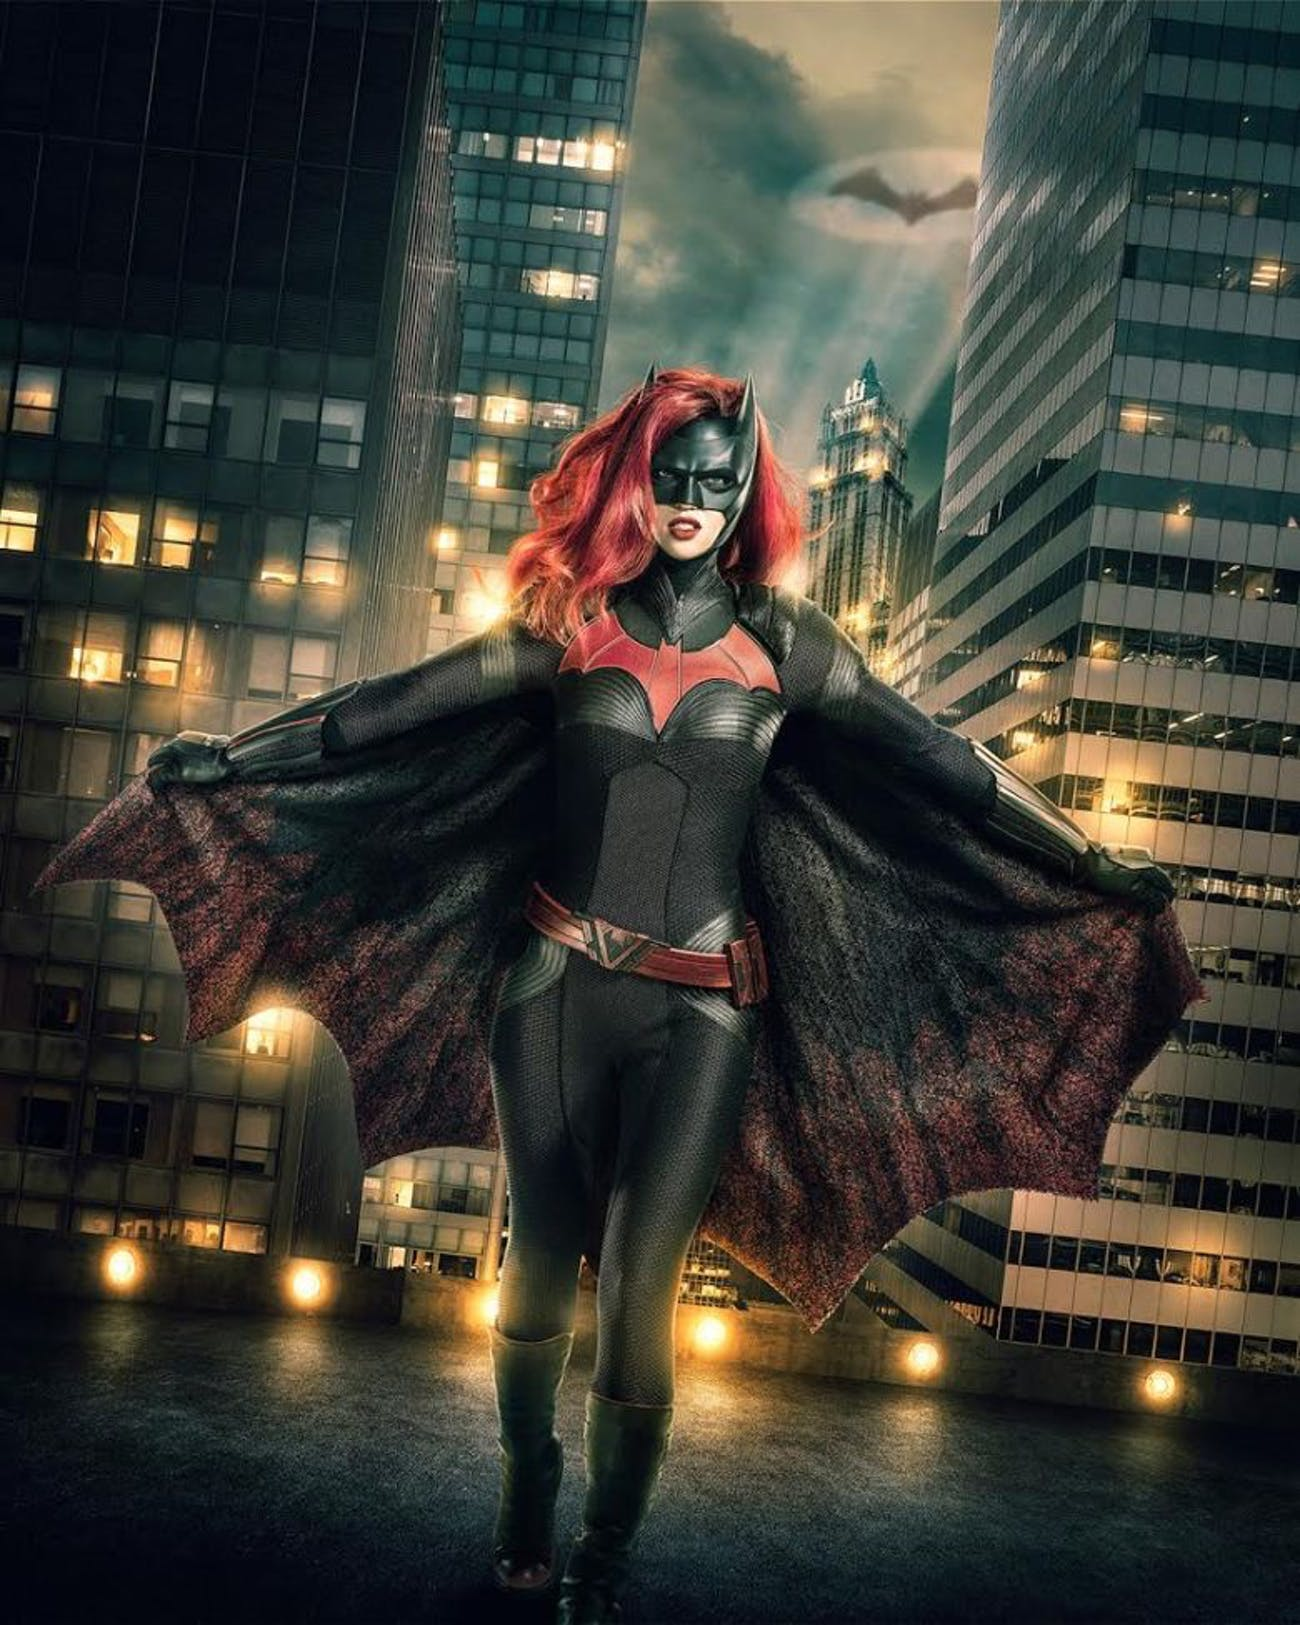 Ruby Rose as Batwoman in the Arrowverse.